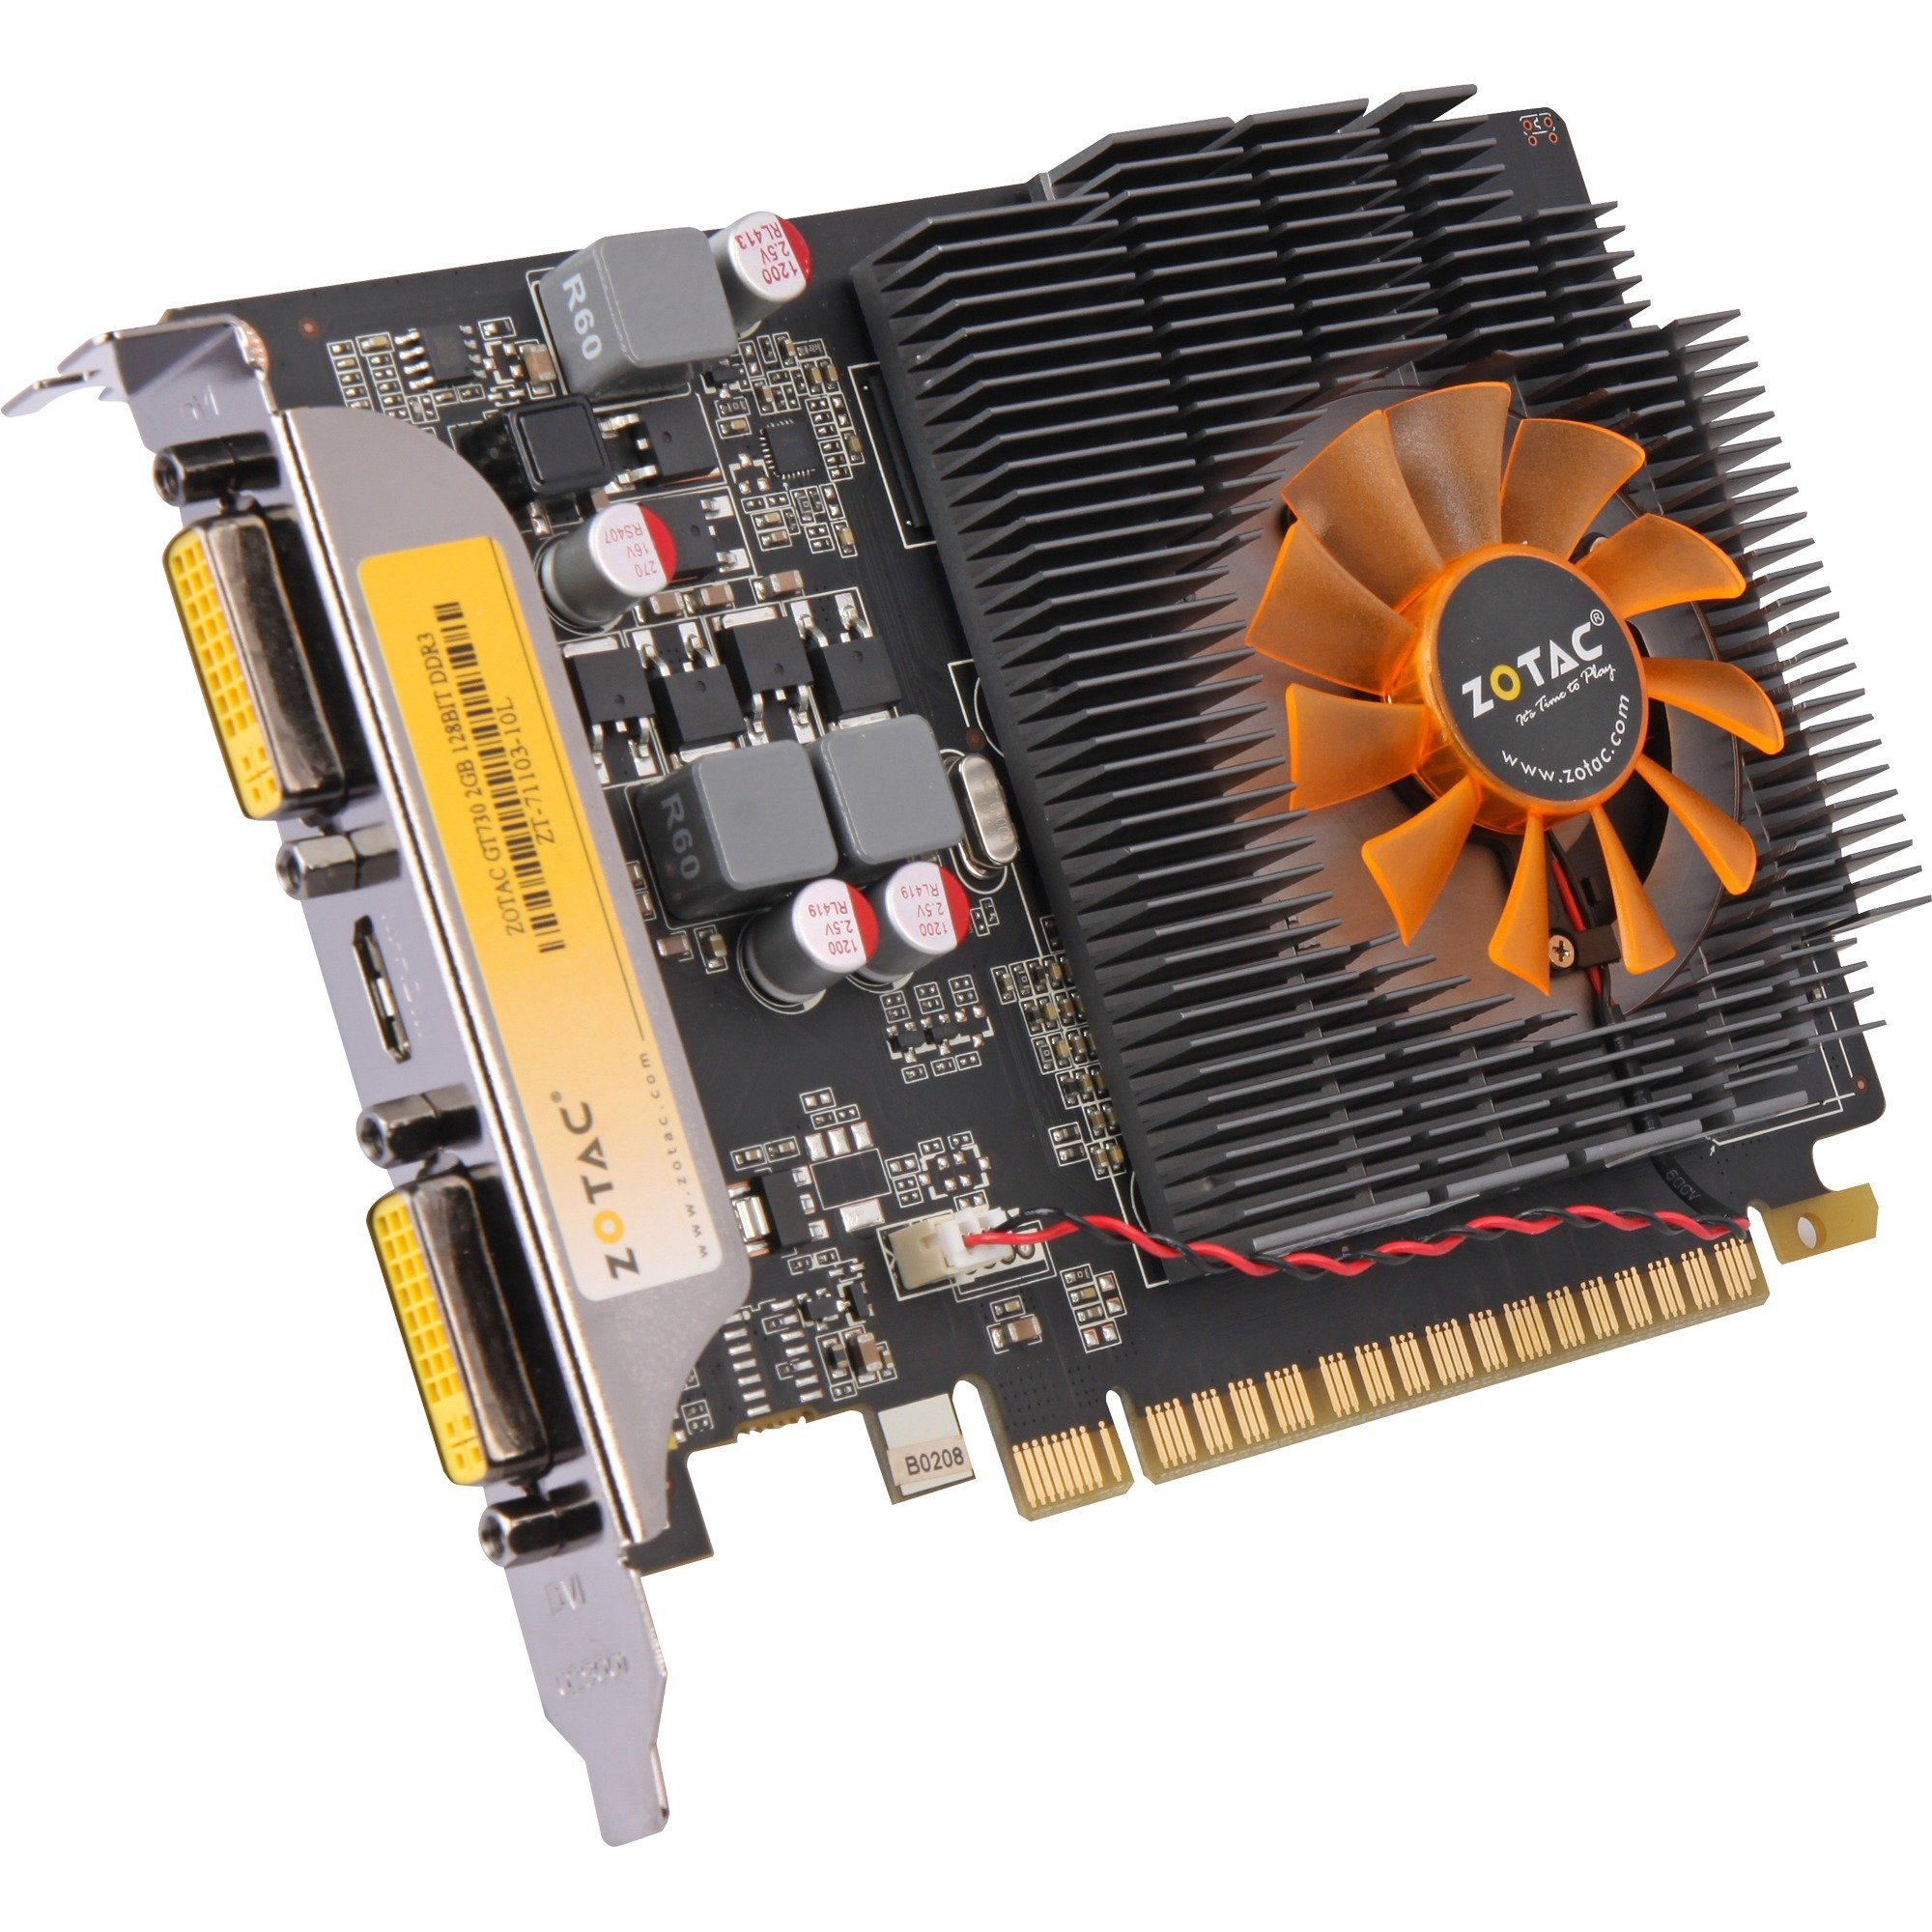 ZOTAC Grafikkarte »GeForce GT 730 2 GB«